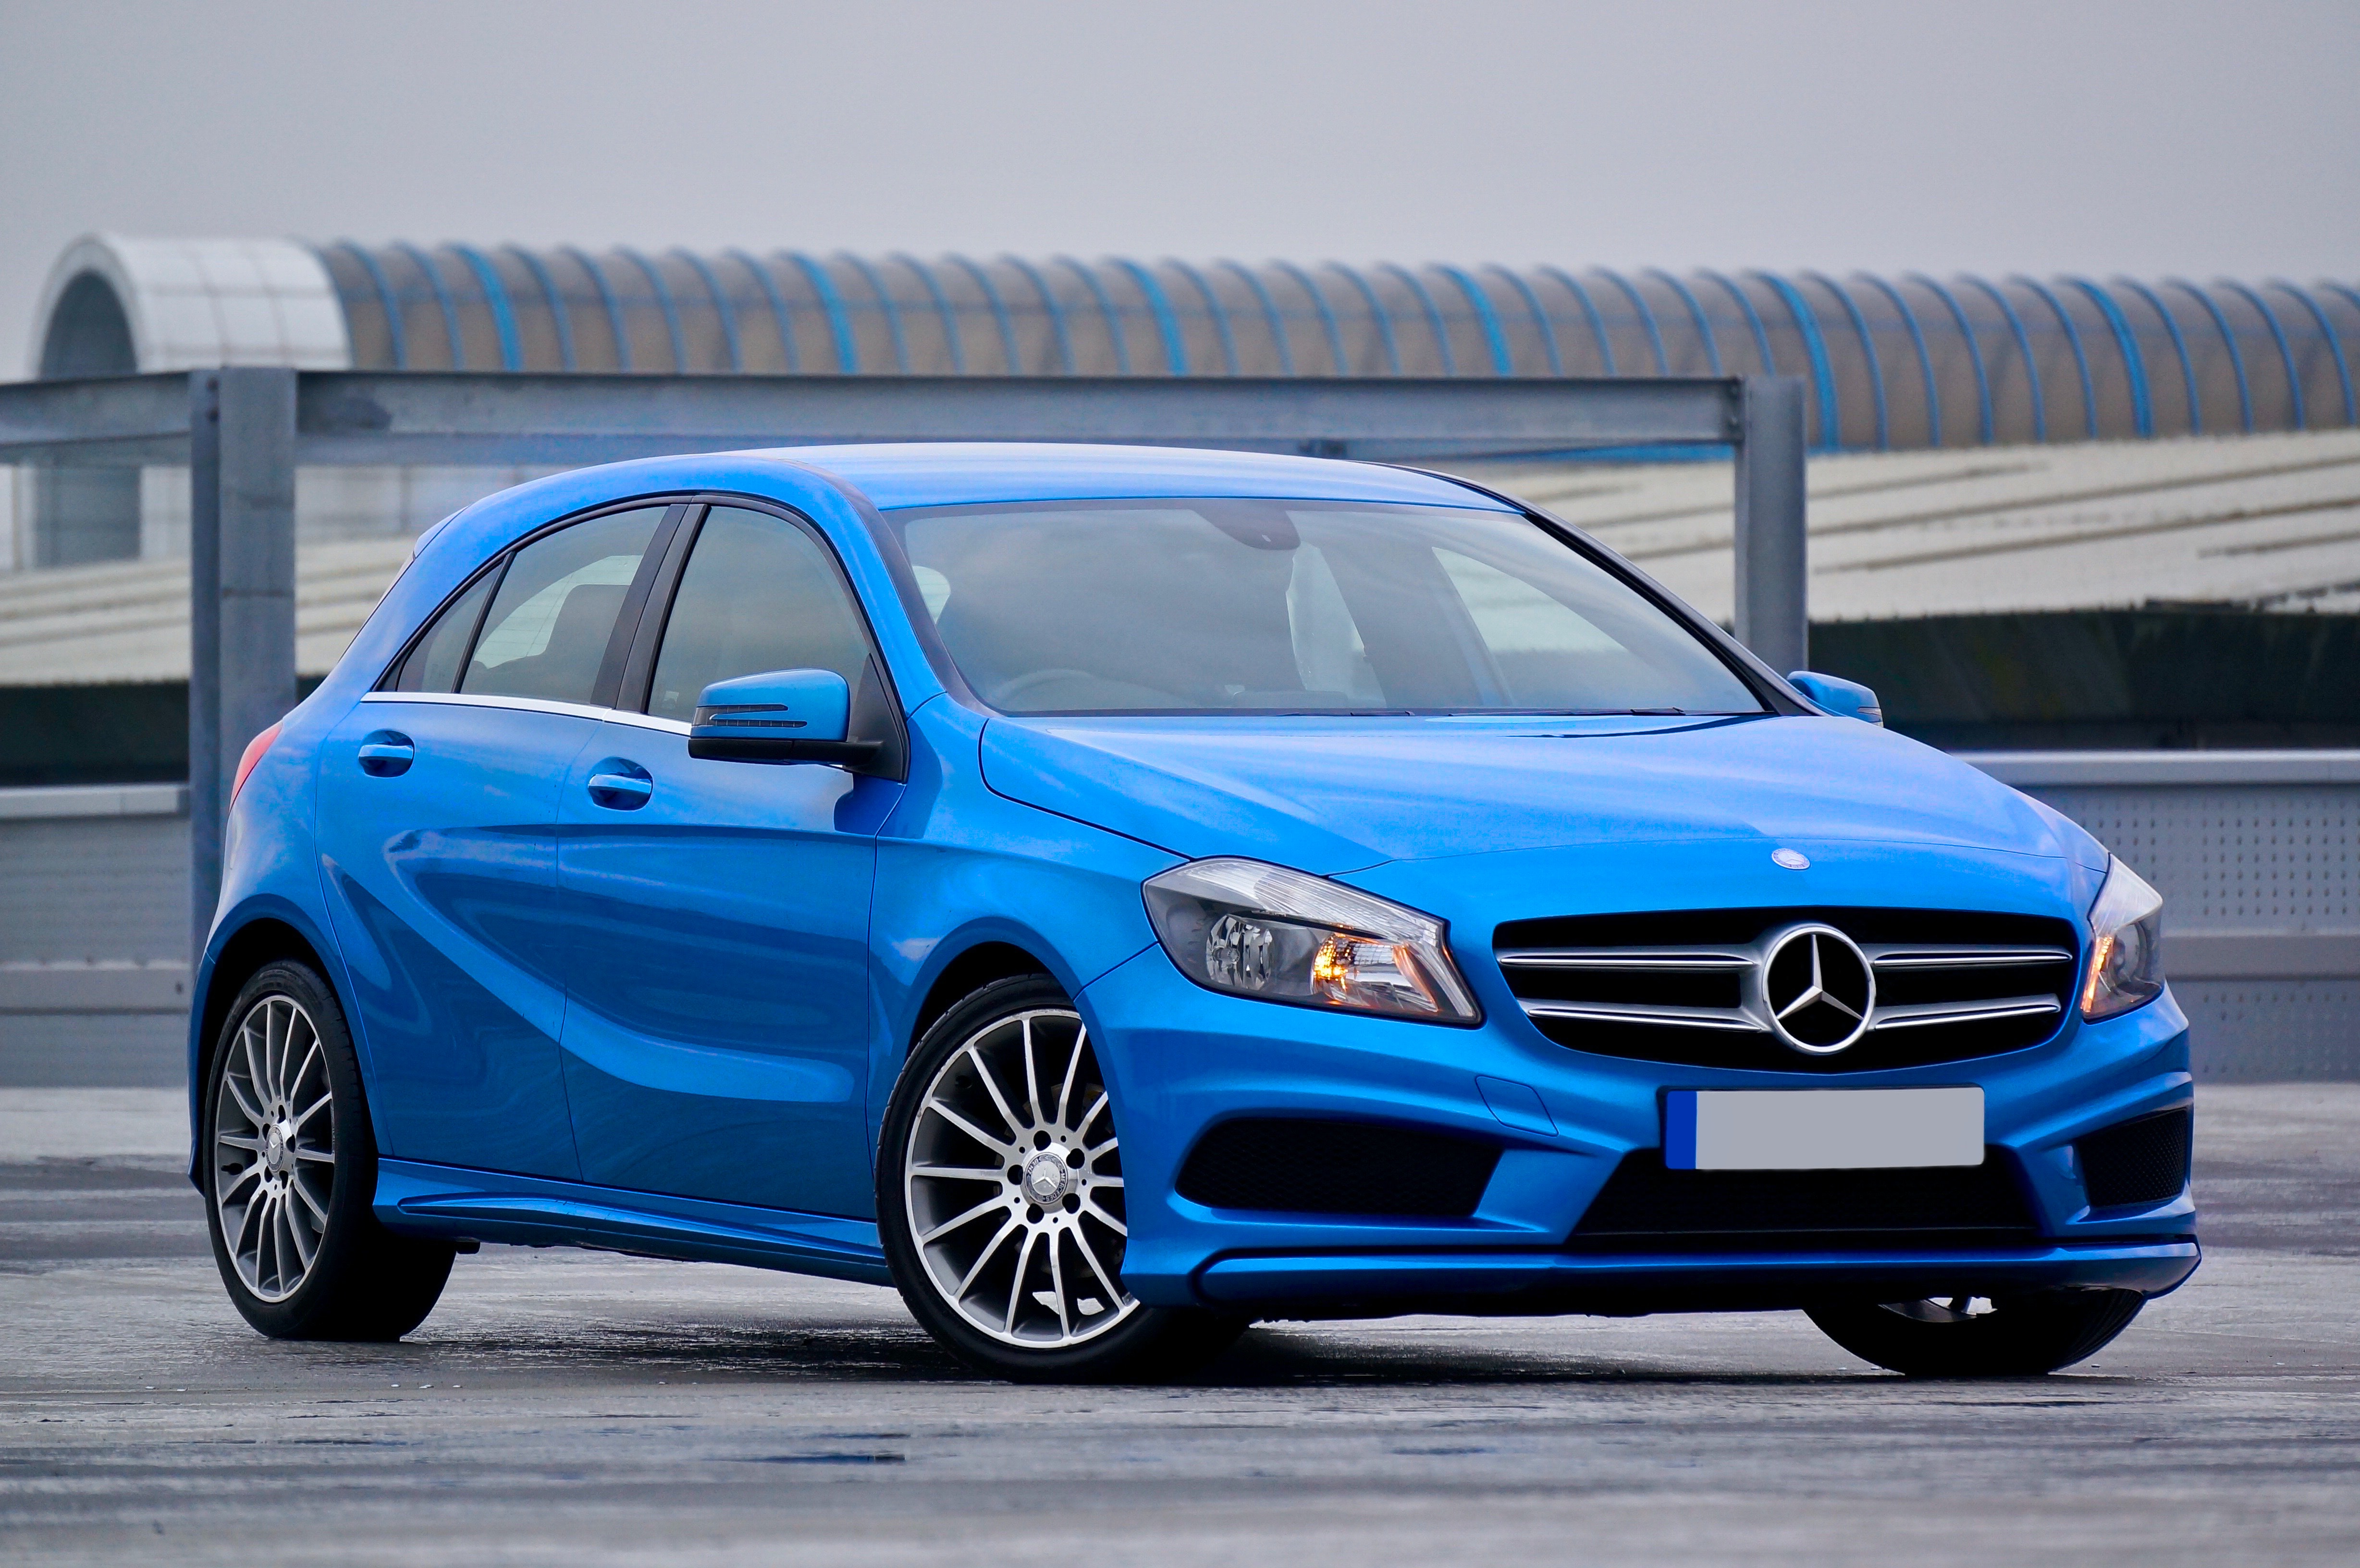 photography of a blue mercedes benz 5 door hatchback free stock photo